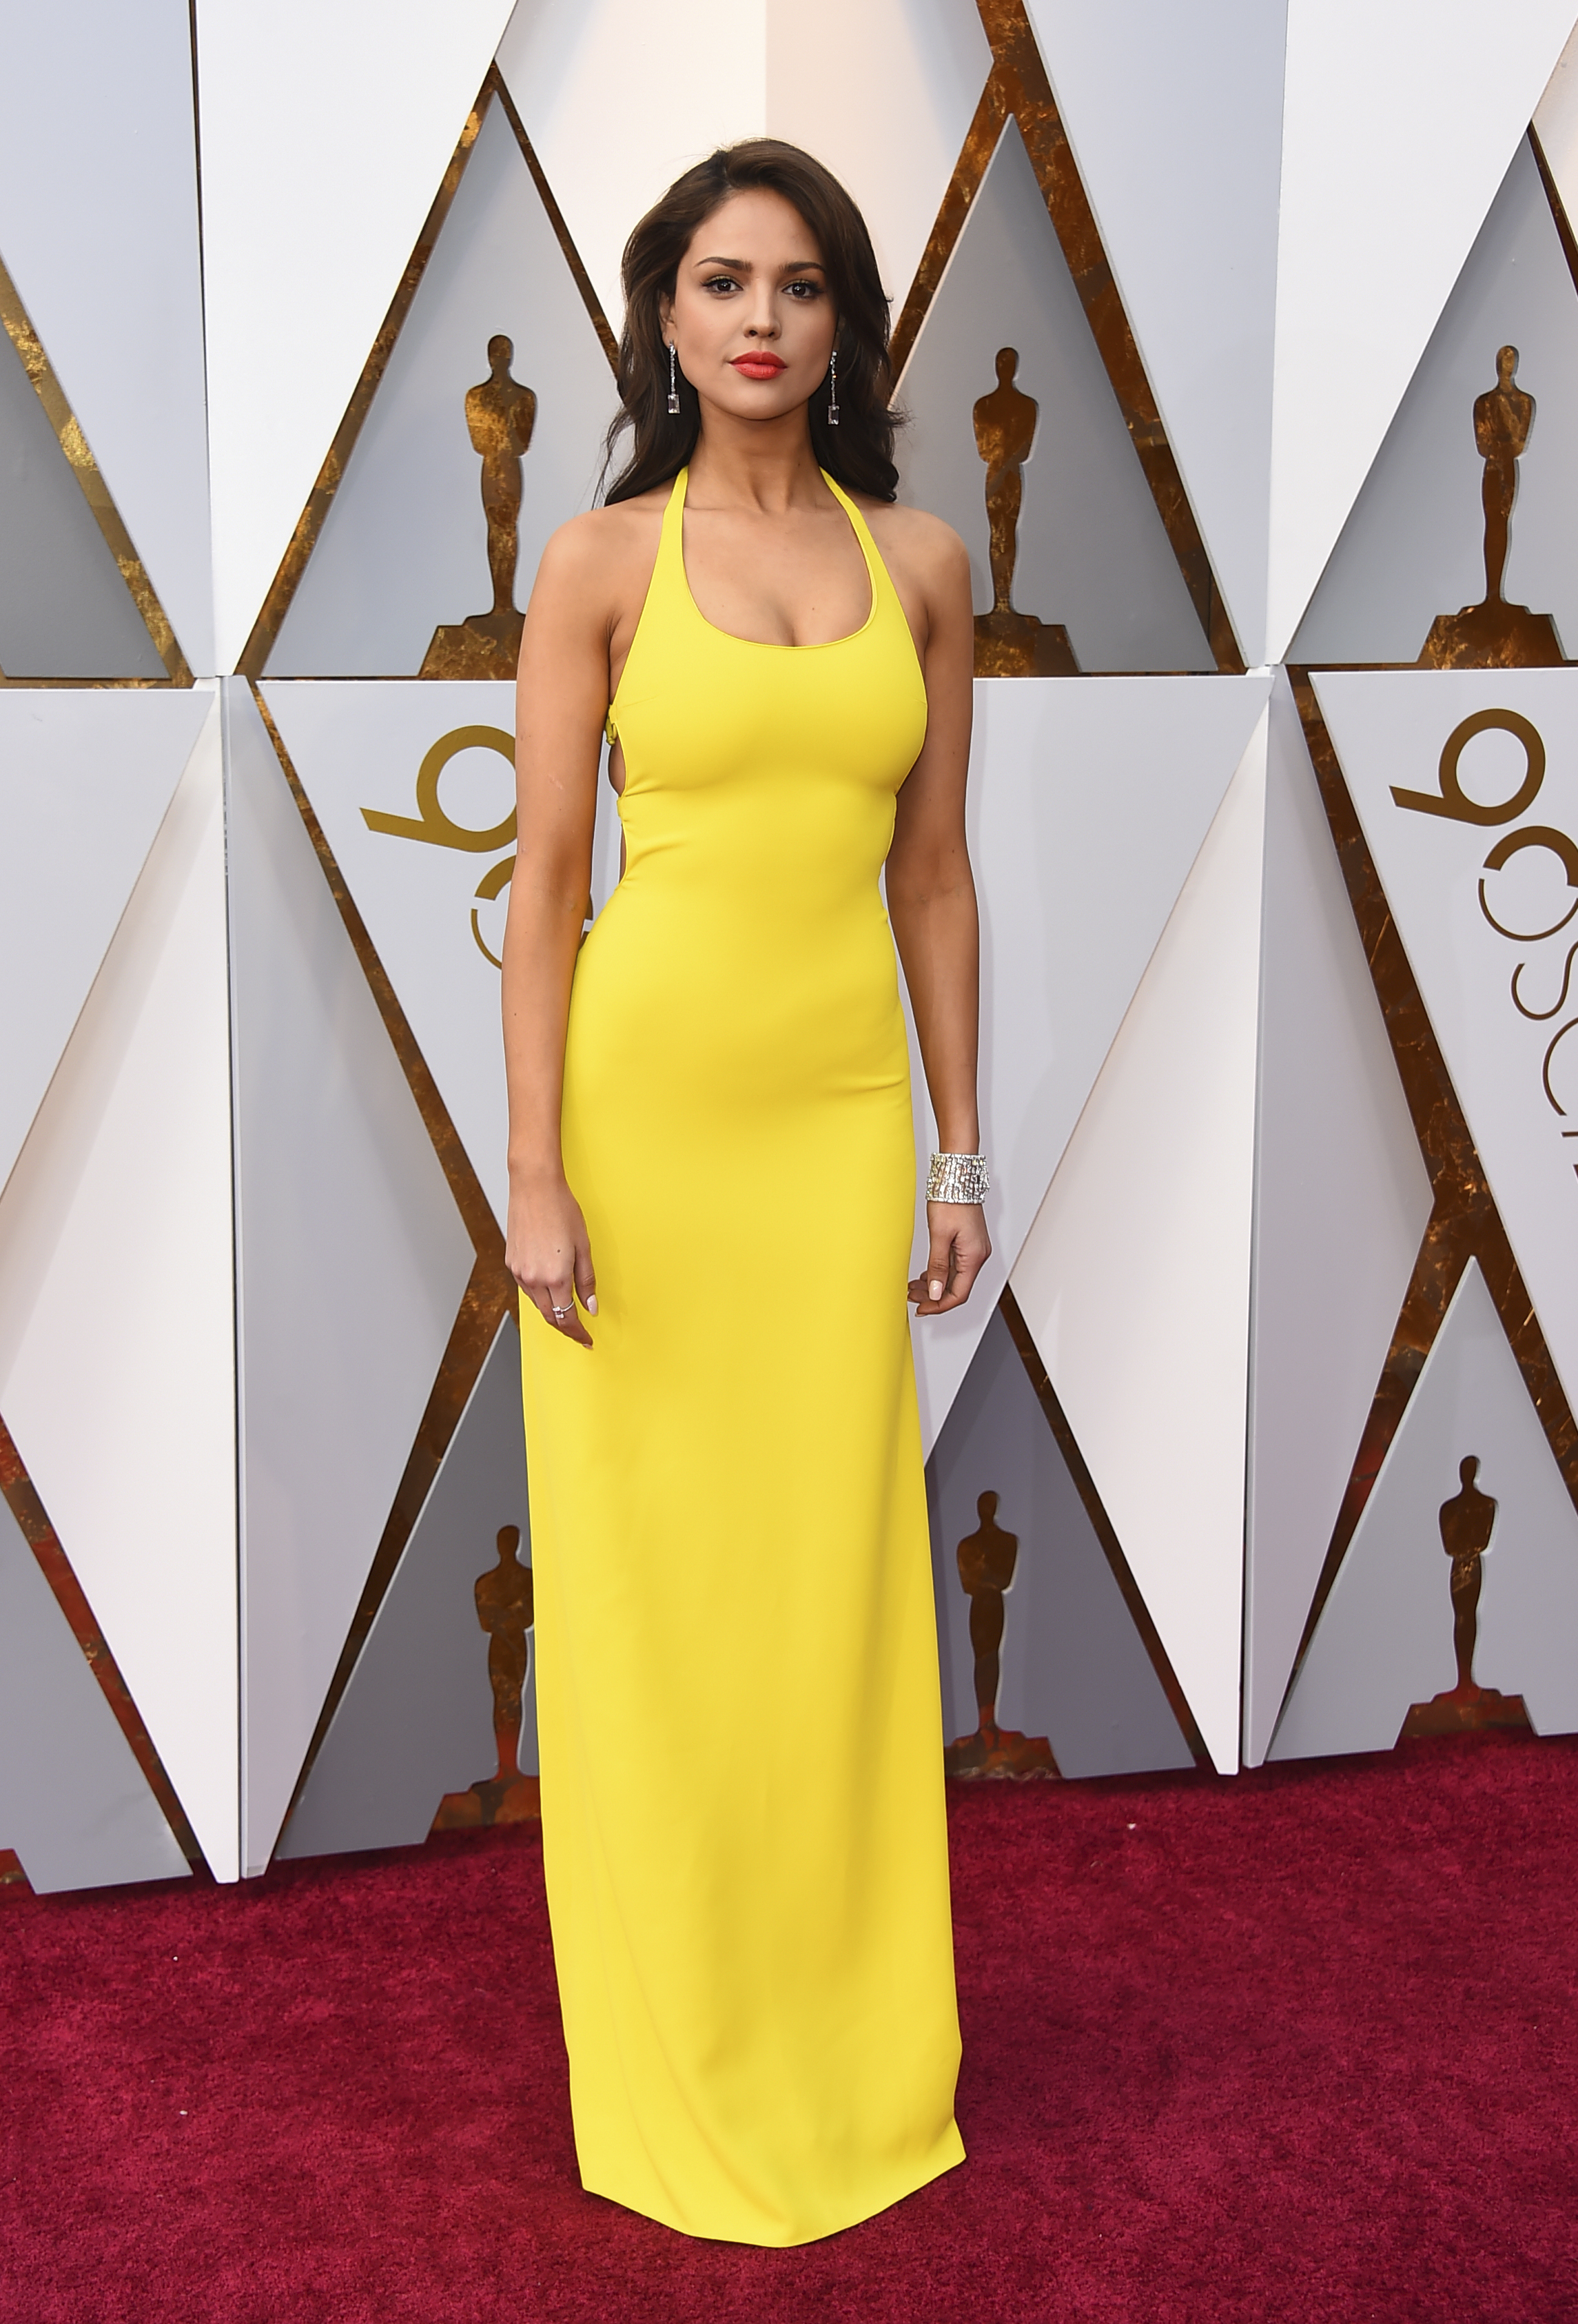 "<div class=""meta image-caption""><div class=""origin-logo origin-image none""><span>none</span></div><span class=""caption-text"">Eiza Gonzalez arrives at the Oscars on Sunday, March 4, 2018, at the Dolby Theatre in Los Angeles. (Jordan Strauss/Invision/AP)</span></div>"